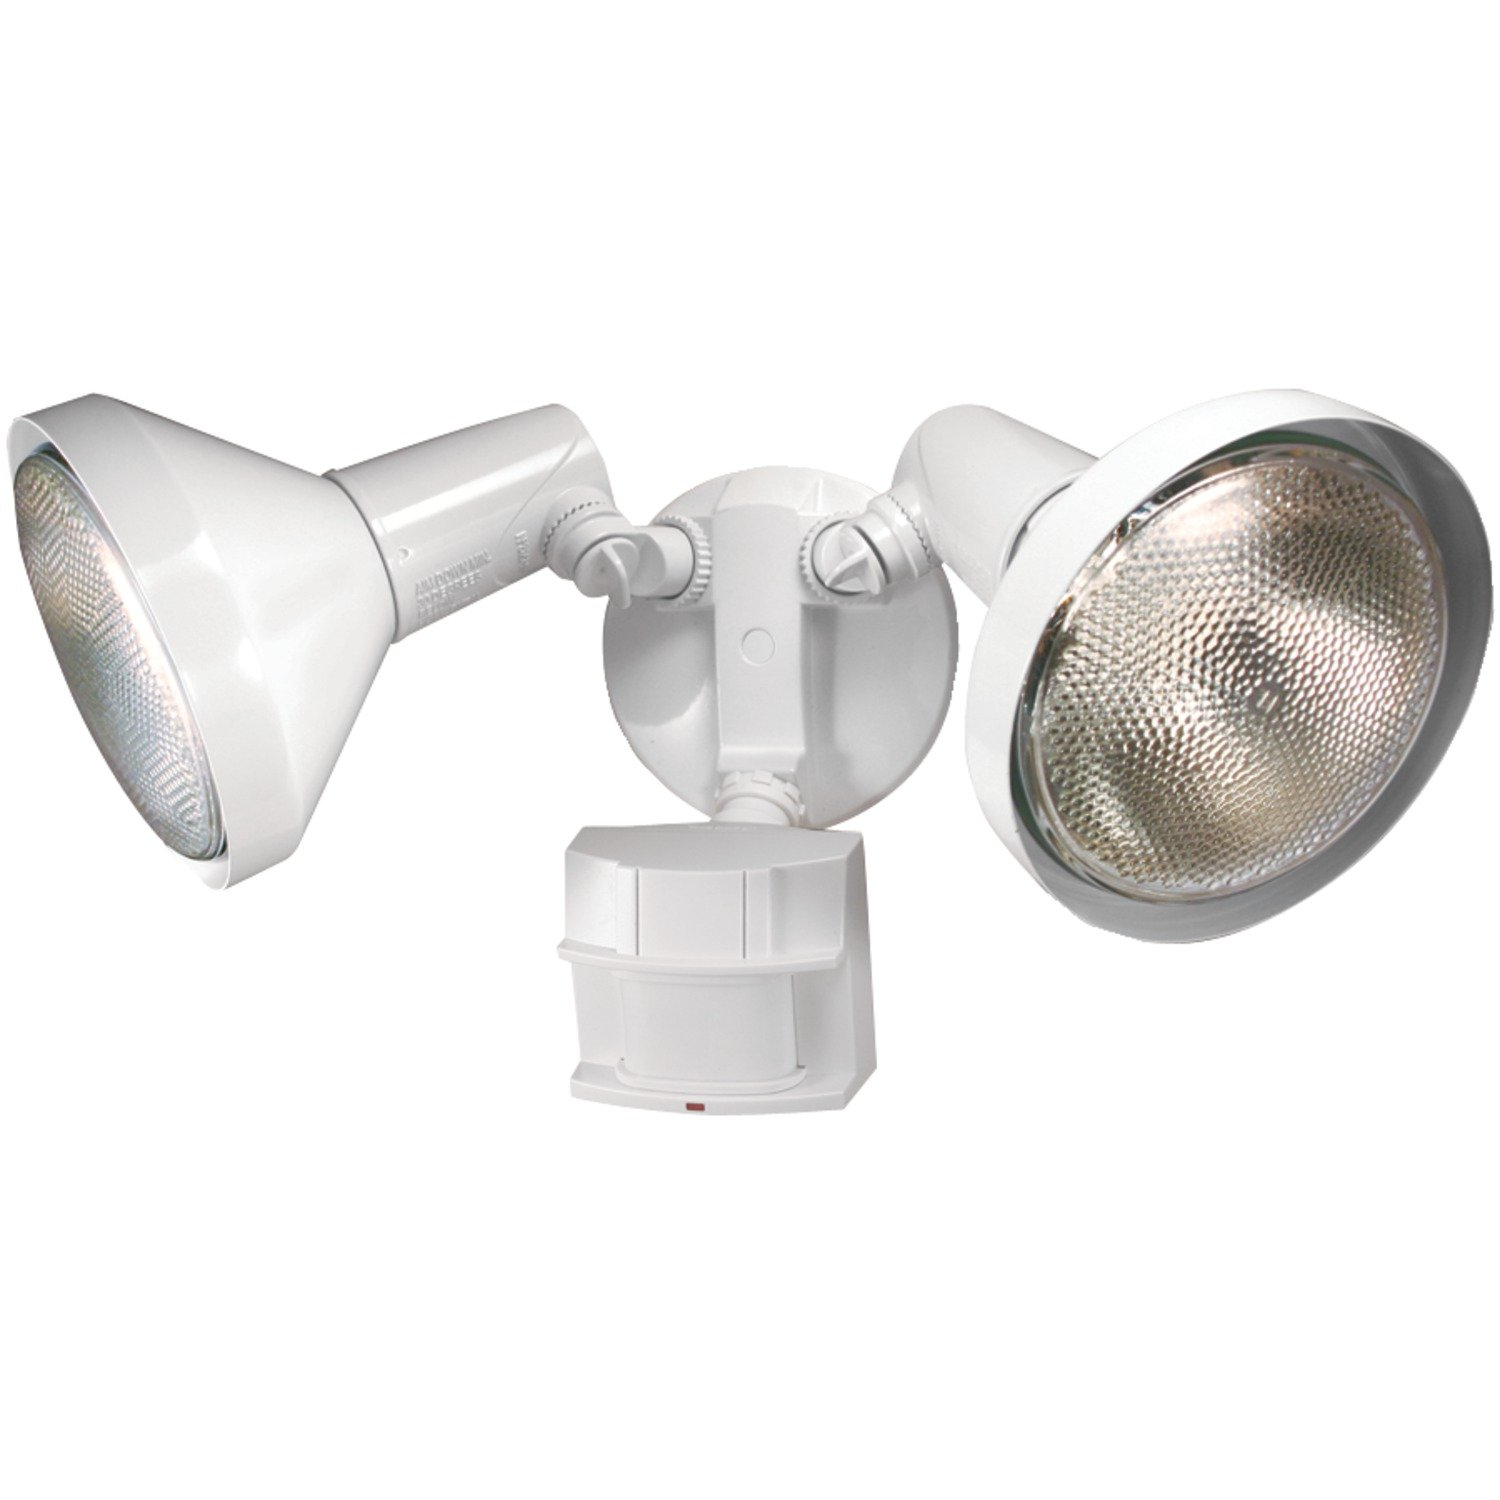 Unique Outdoor Motion Sensor Flood Lights